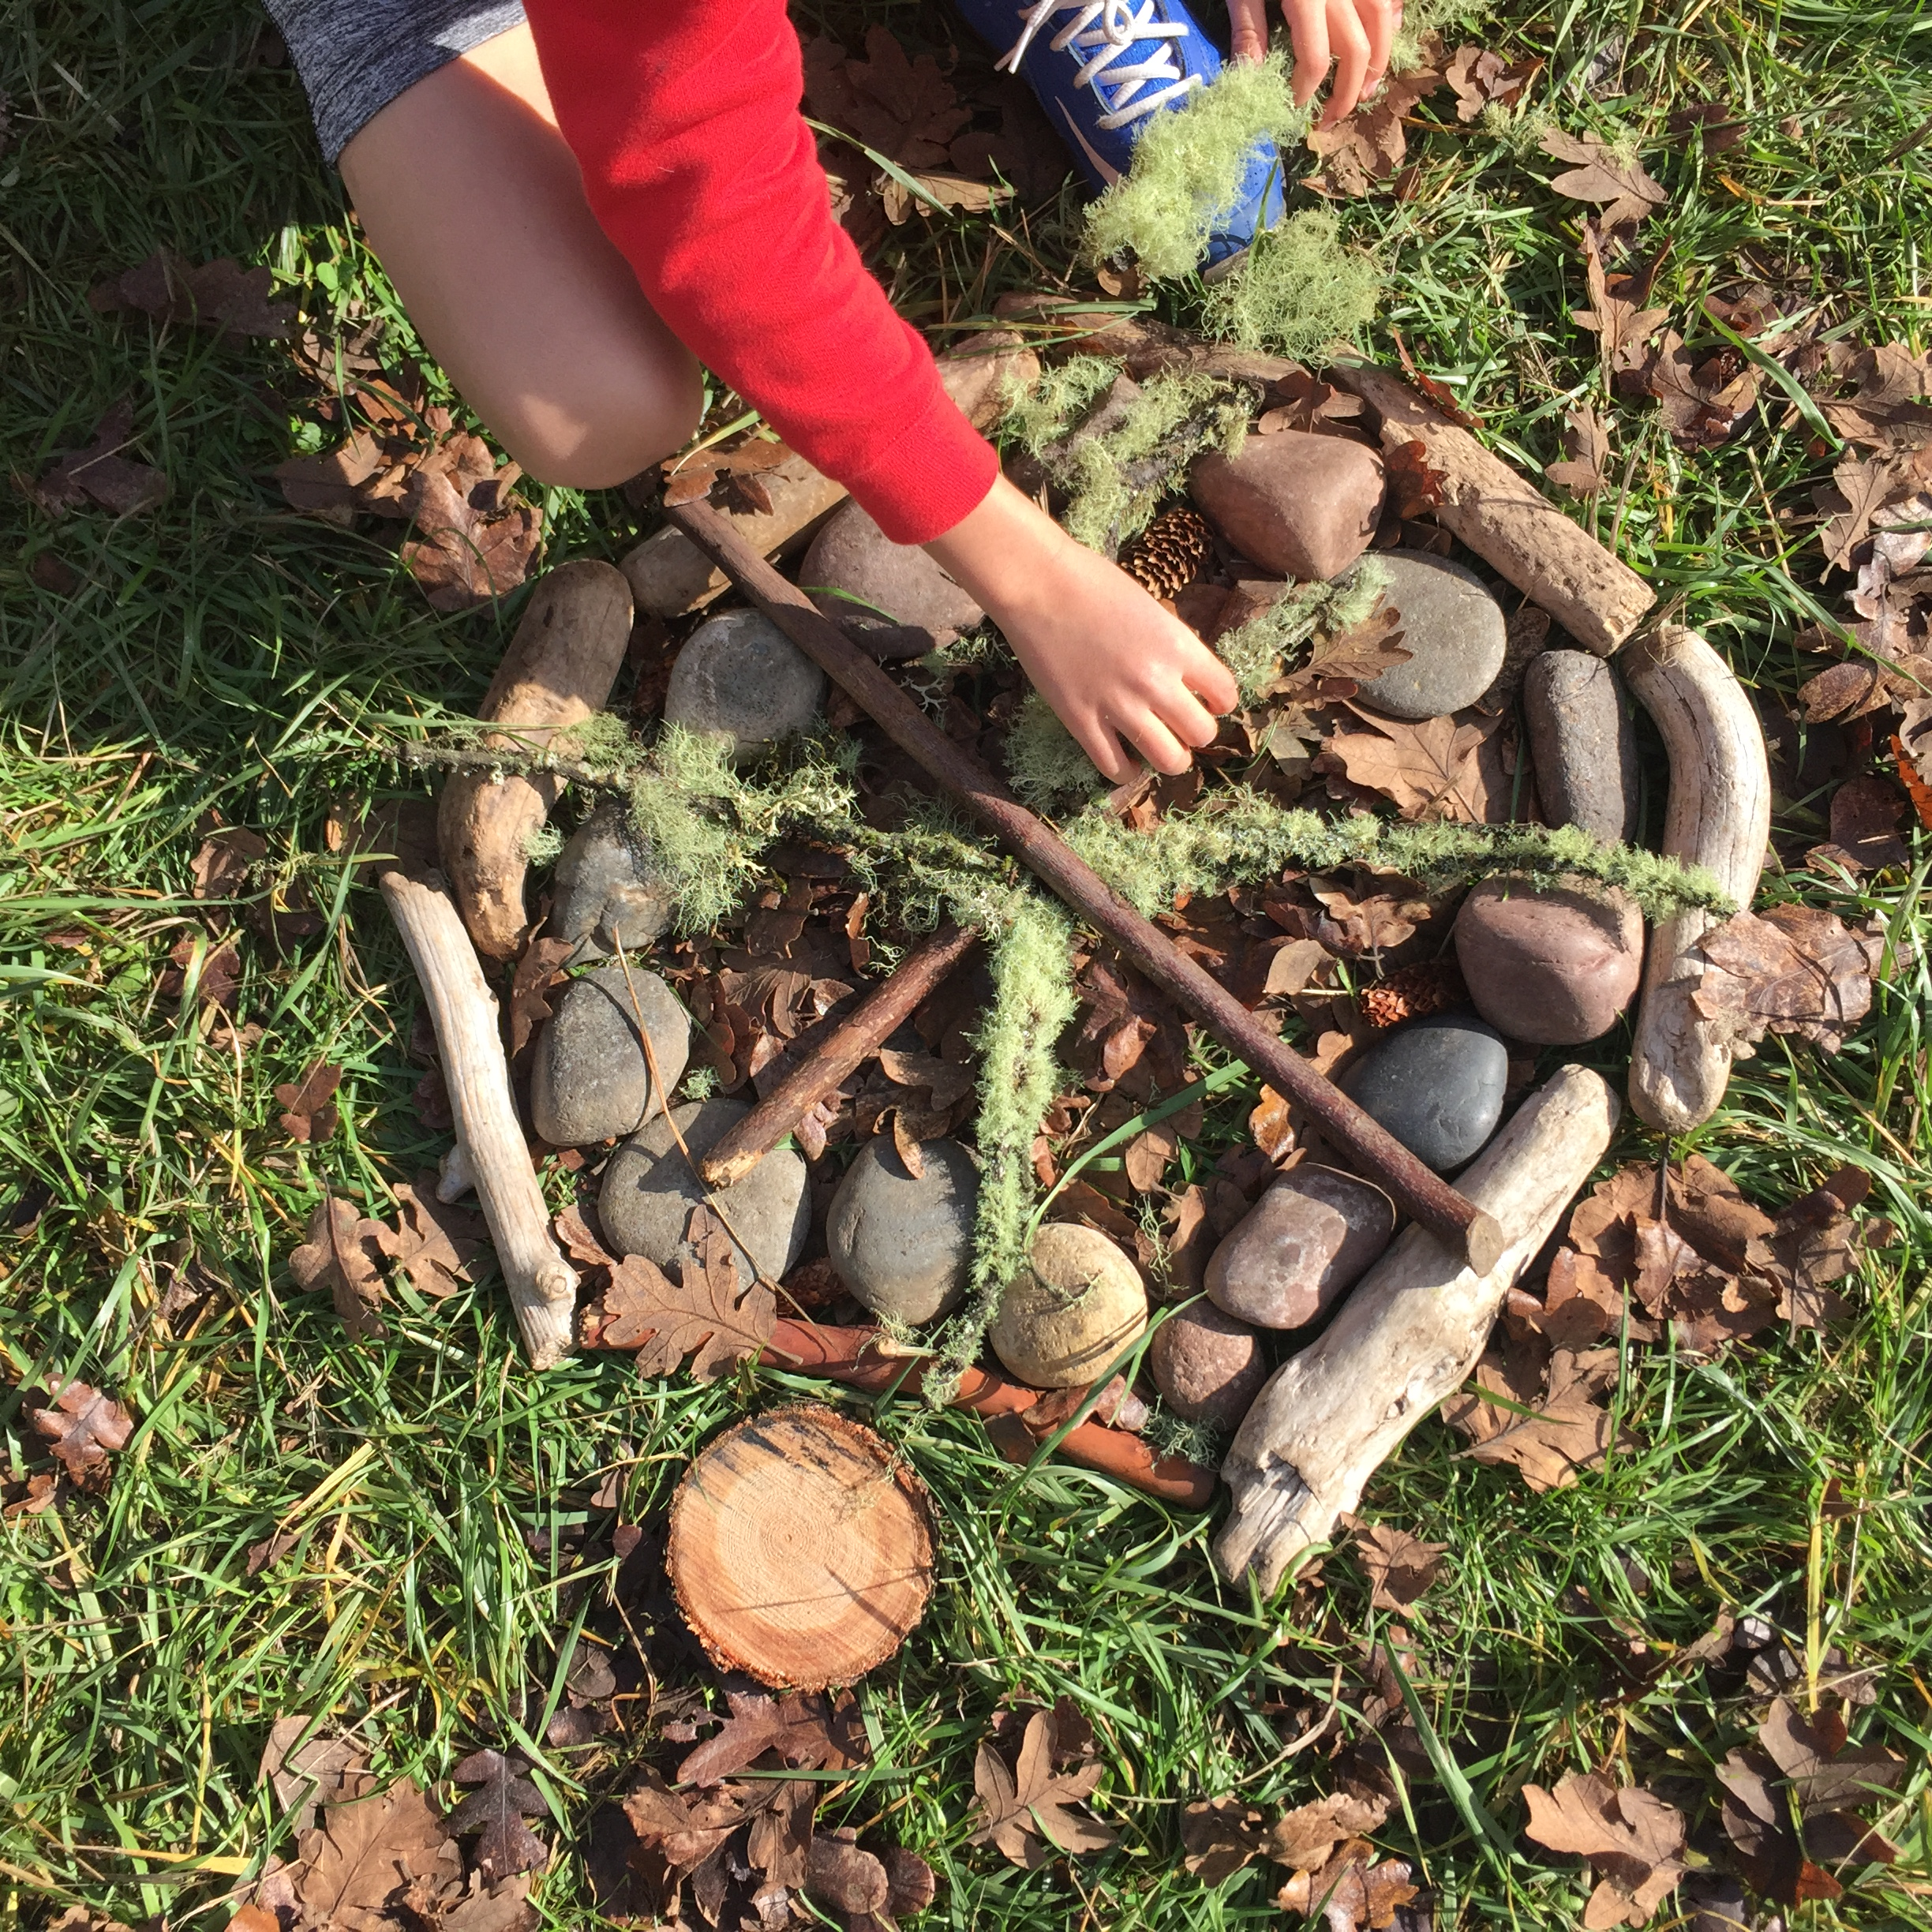 child making art with sticks and leaves